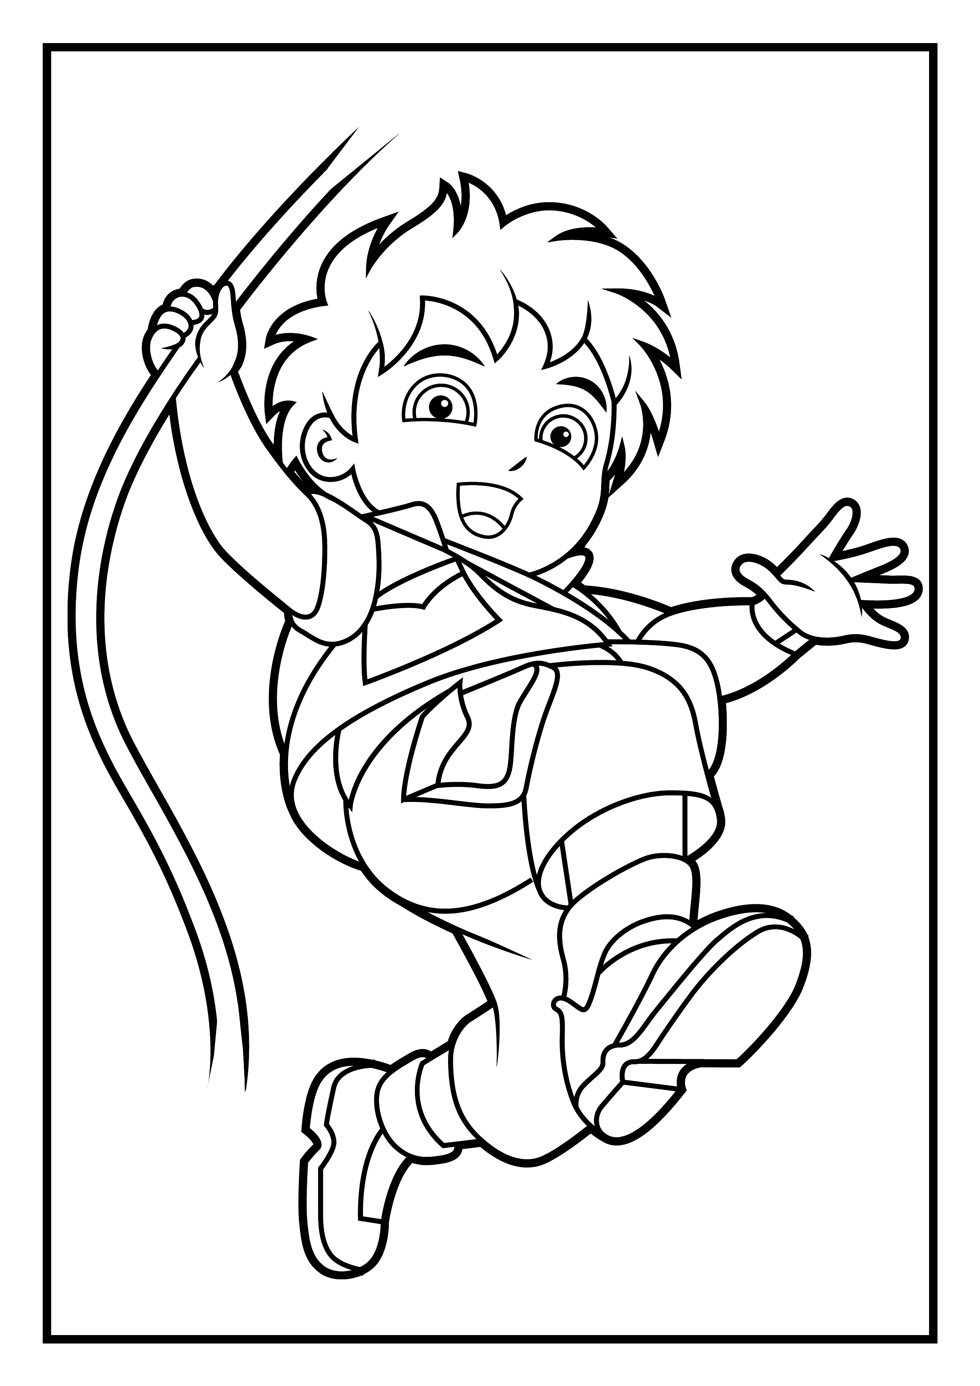 diego coloring pages dora coloring pages diego coloring pages coloring diego pages